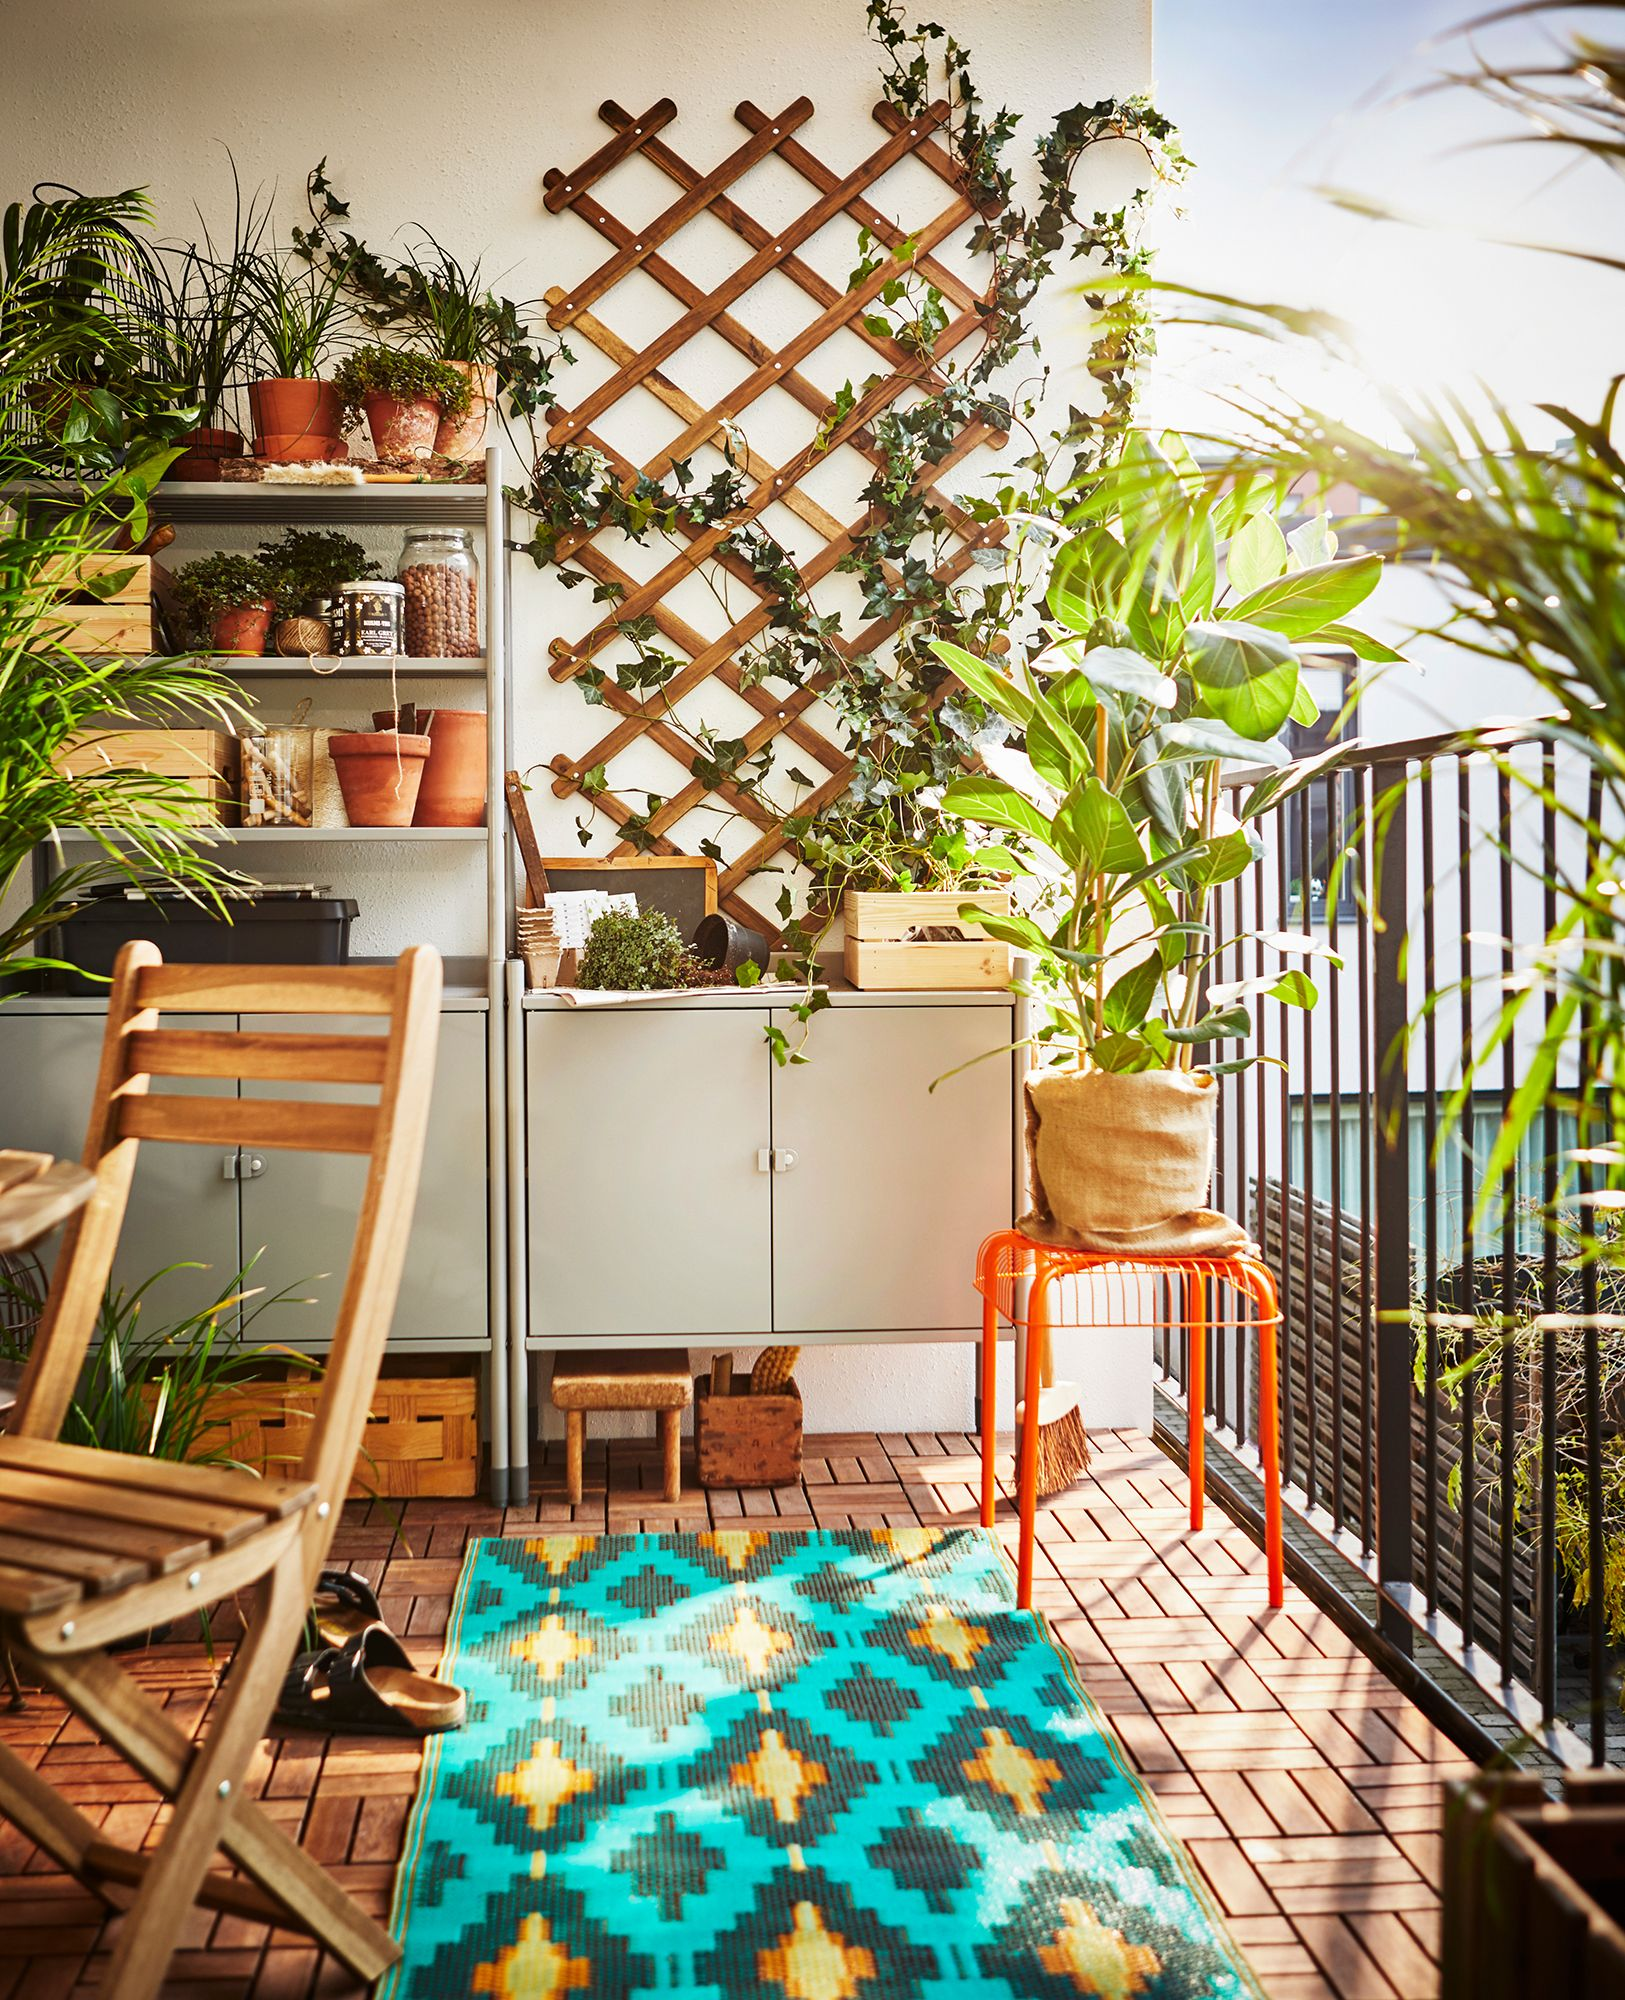 Ikea Outdoor Furniture Australia Create An Oasis No Matter How Small Your Space Is Ikea Australia